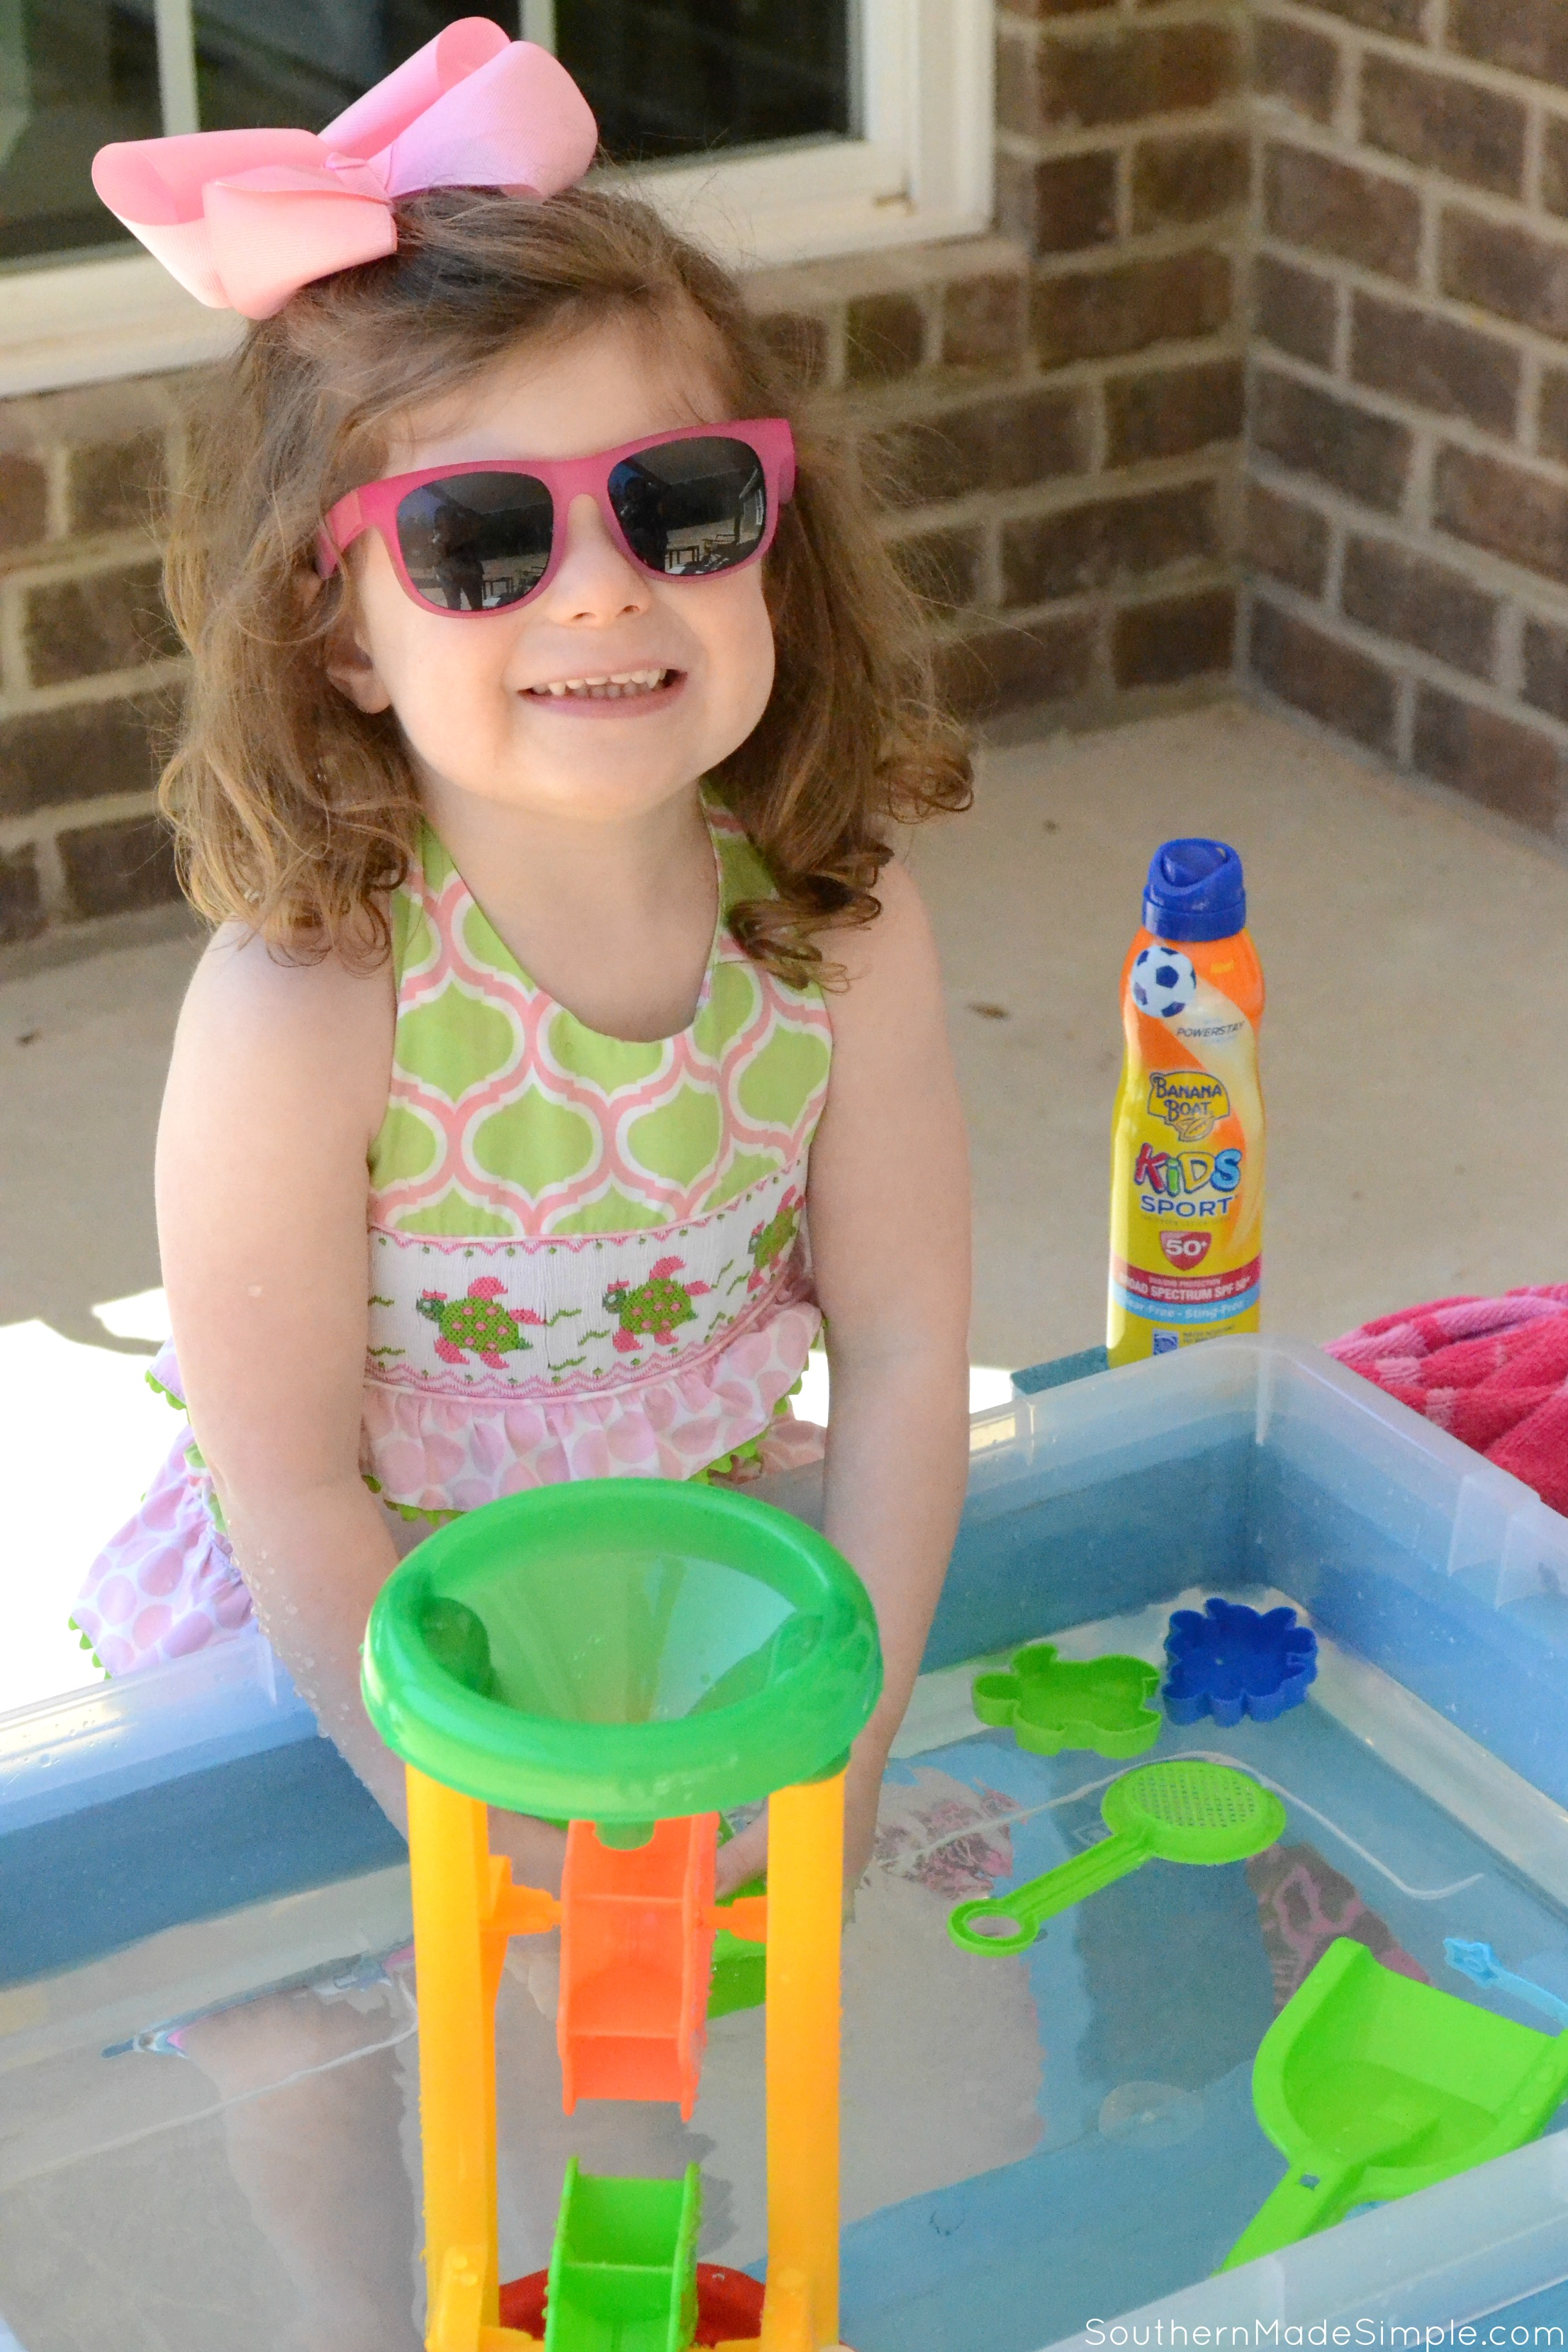 As the days start getting warmer, we're starting to get outside and enjoy the sunshine! This DIY Water Activity Table is a great way to keep little ones entertained, and it costs less than $30! Don't forget the• Banana Boat® Kids Sport Sunscreen Lotion Spray with PowerStay™ Technology so you can play outdoors even longer! #ad #BBRealFun